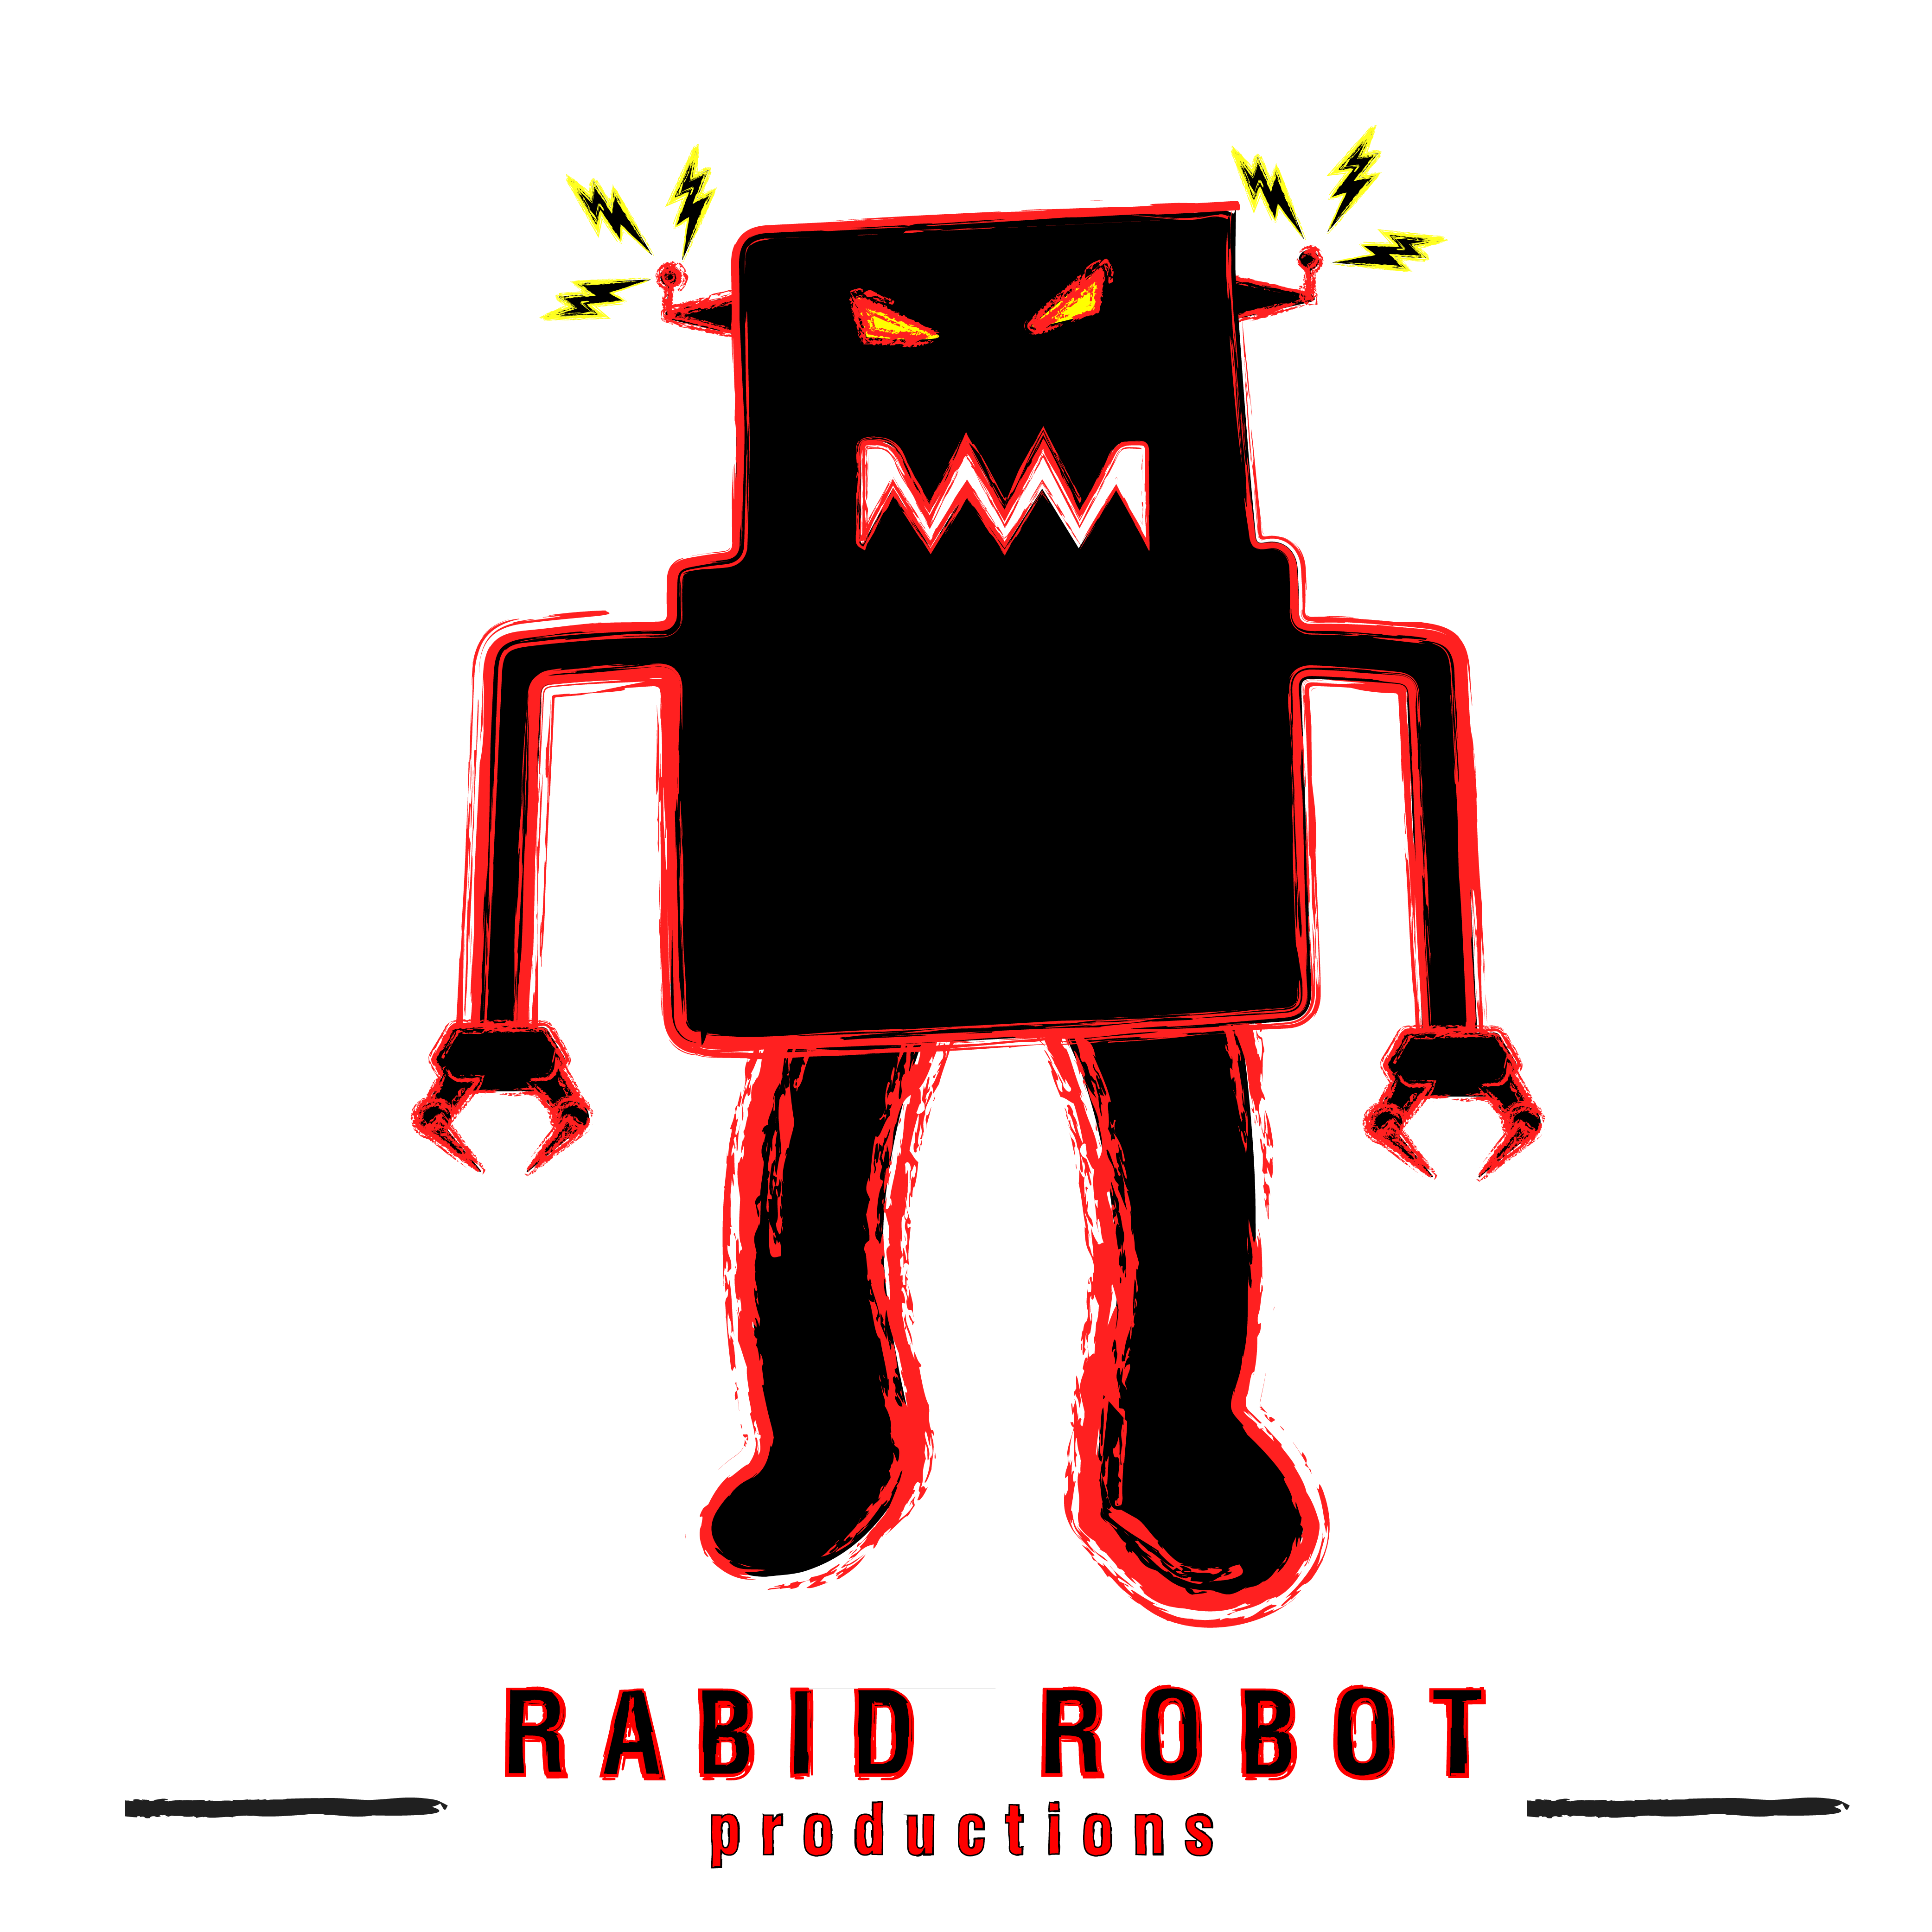 Rabid-Robot-Productions-logo-4-final-01